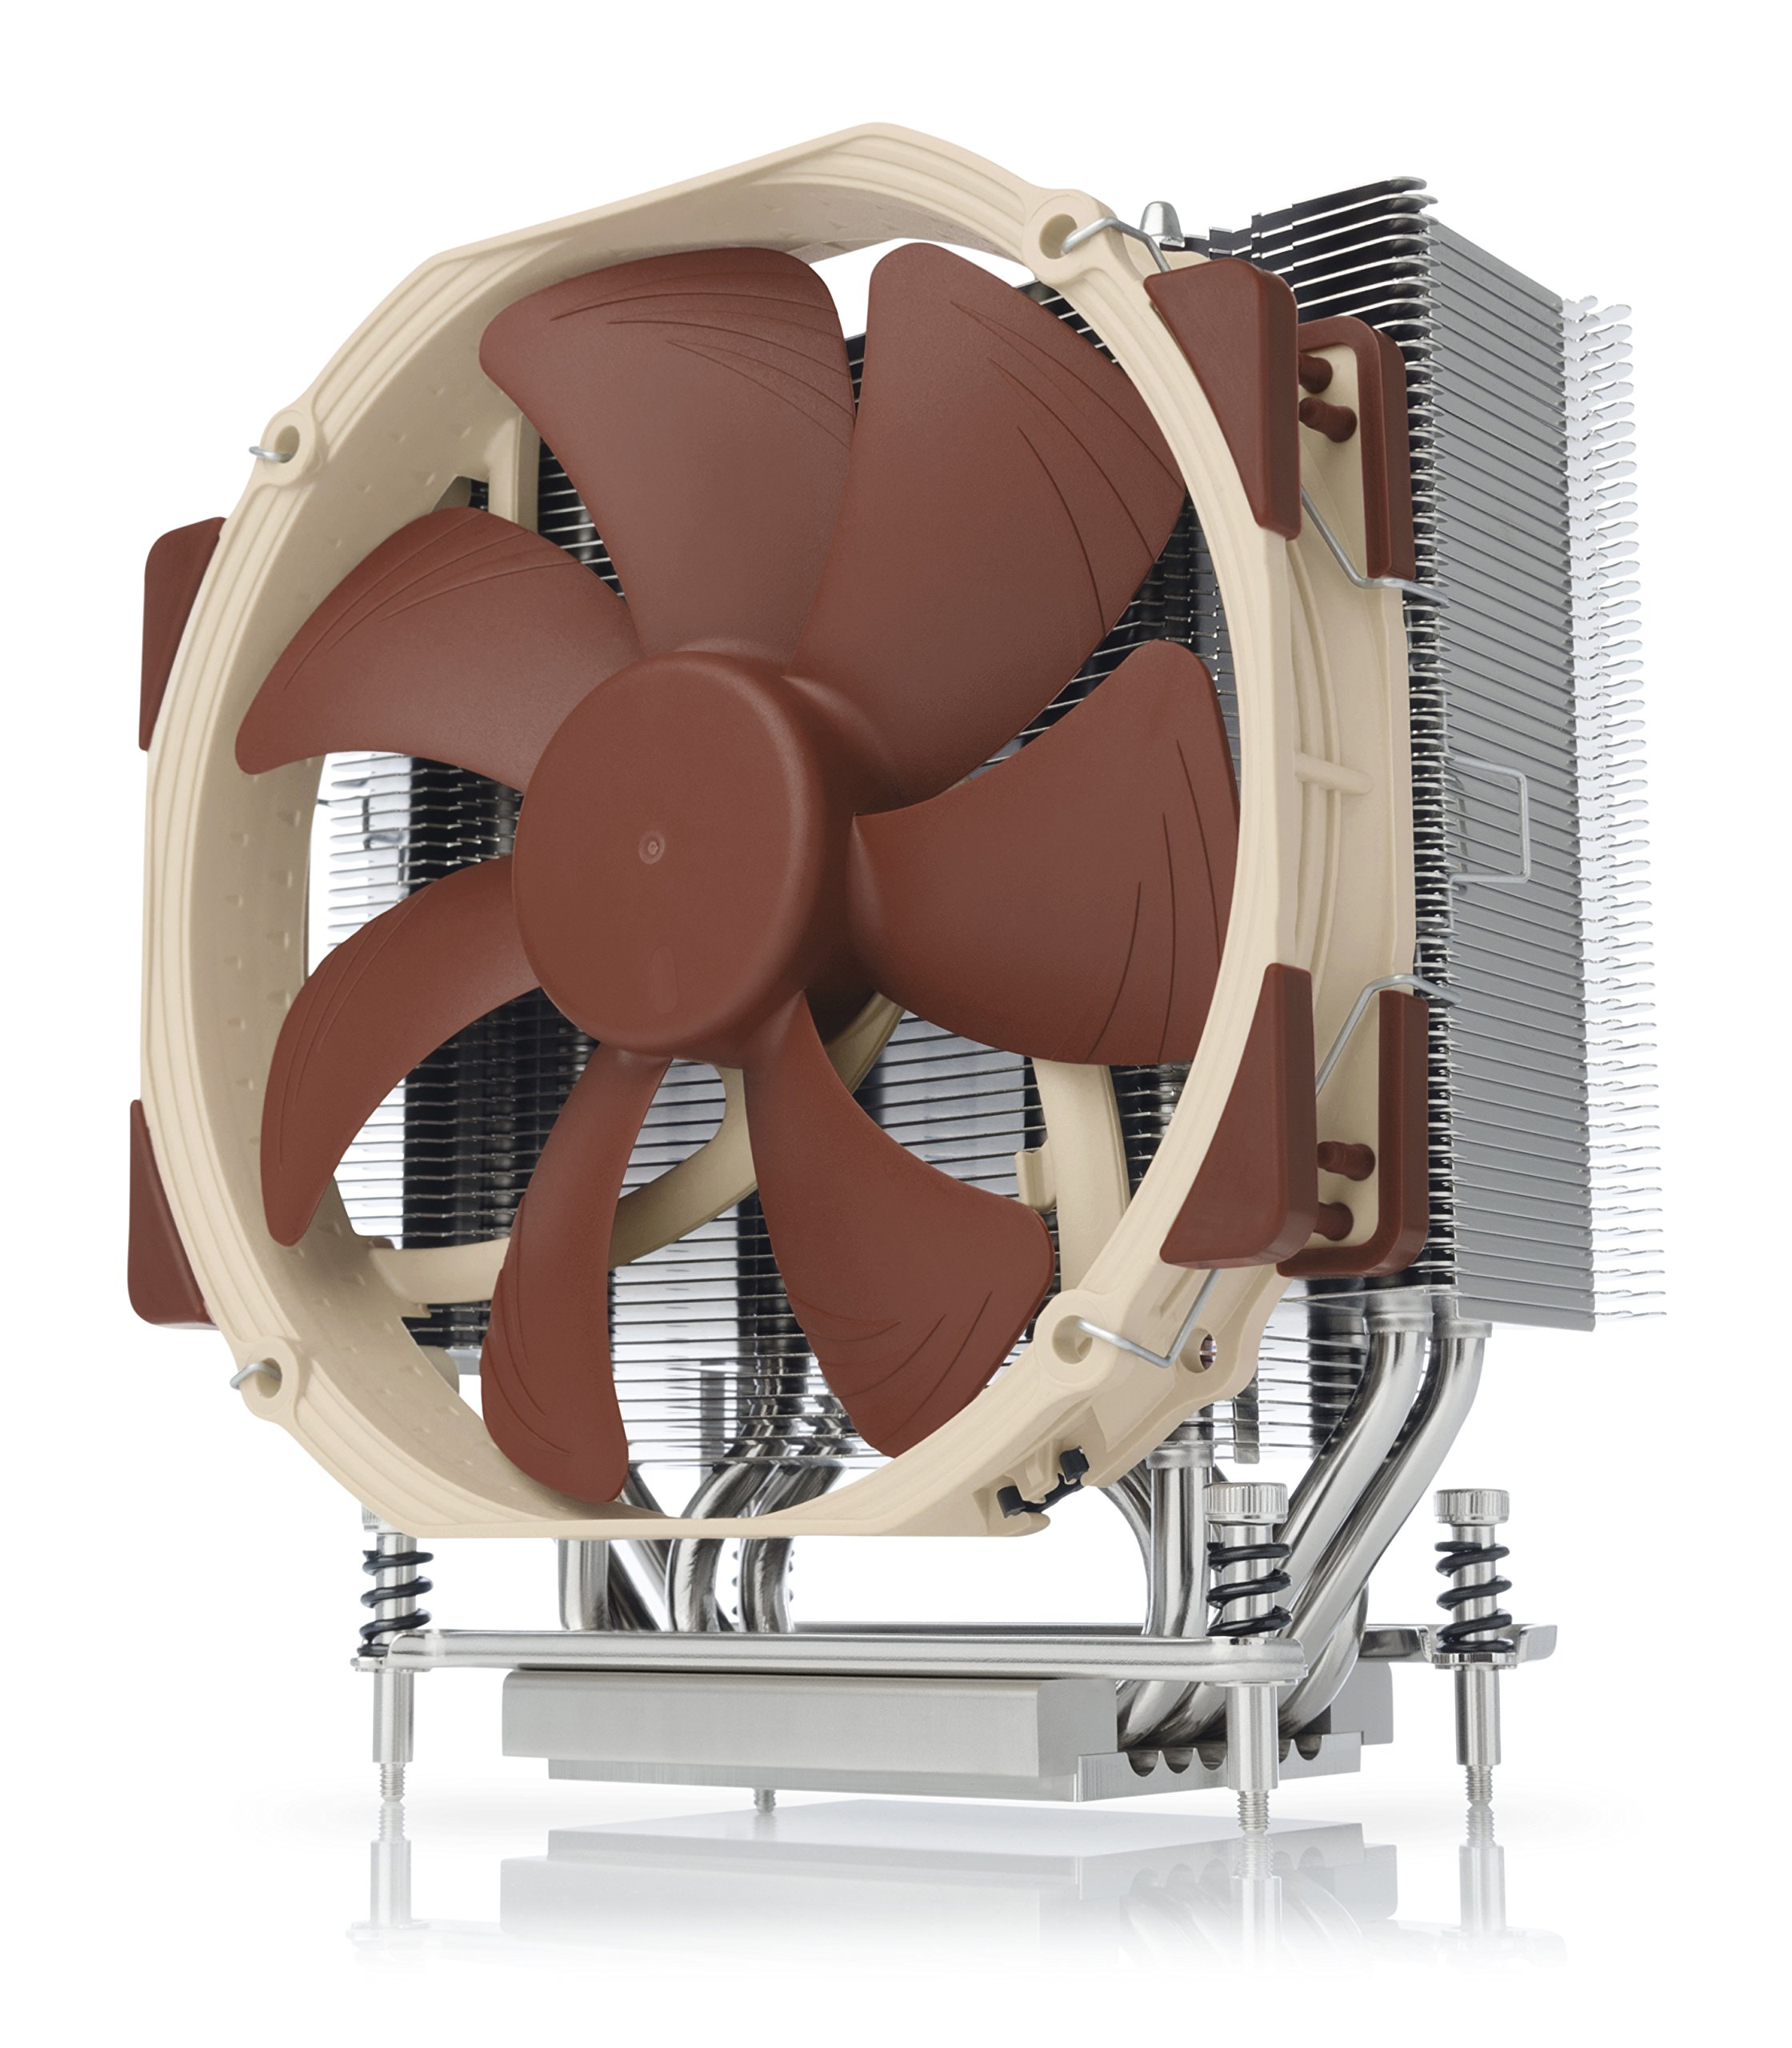 Noctua NH-U14S TR4-SP3 premium-grade 140mm CPU cooler for AMD TR4/SP3 by noctua